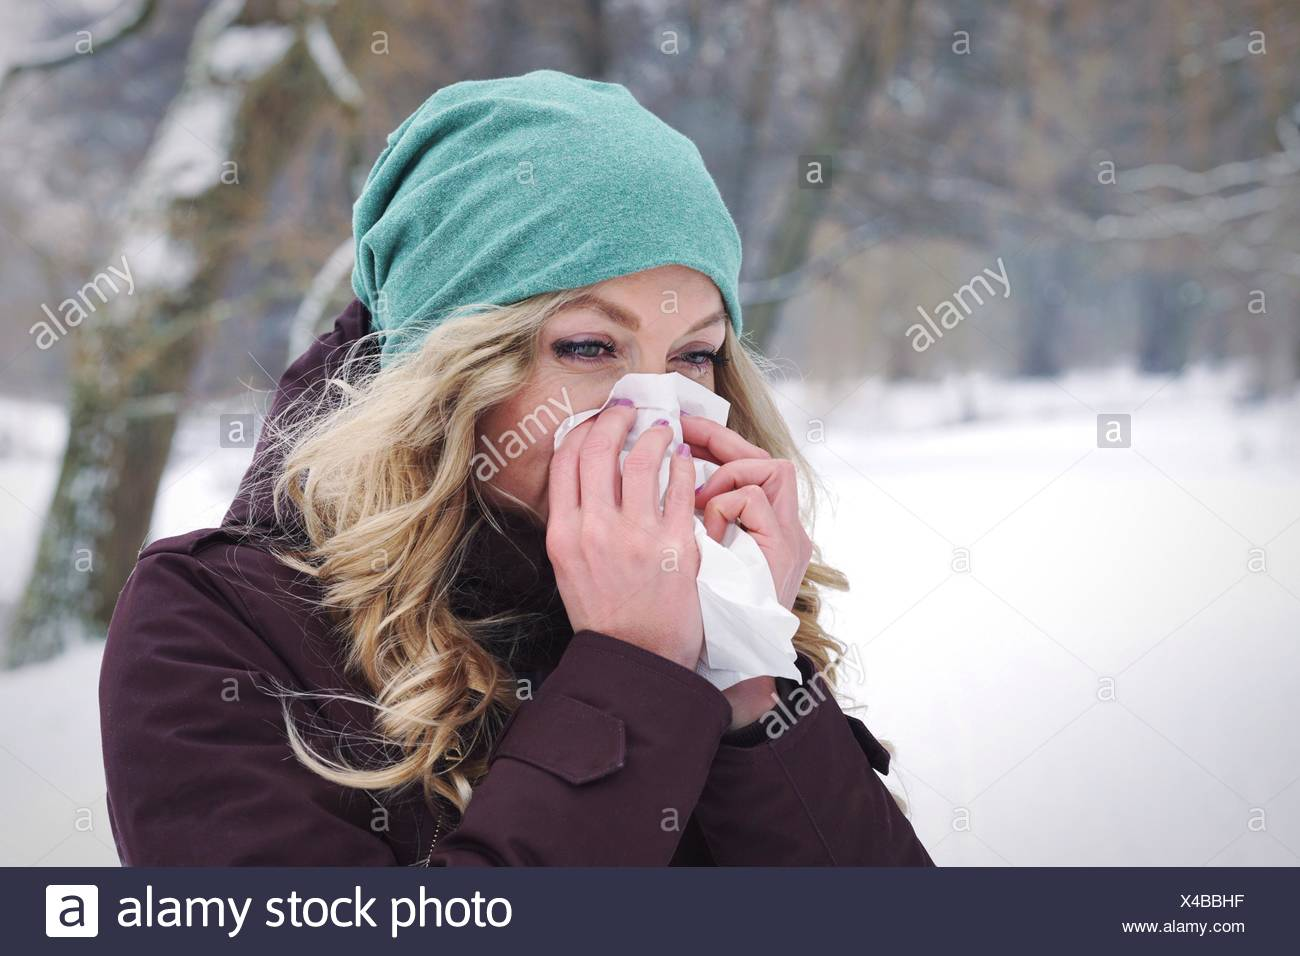 Woman Blowing Nose During Winter - Stock Image